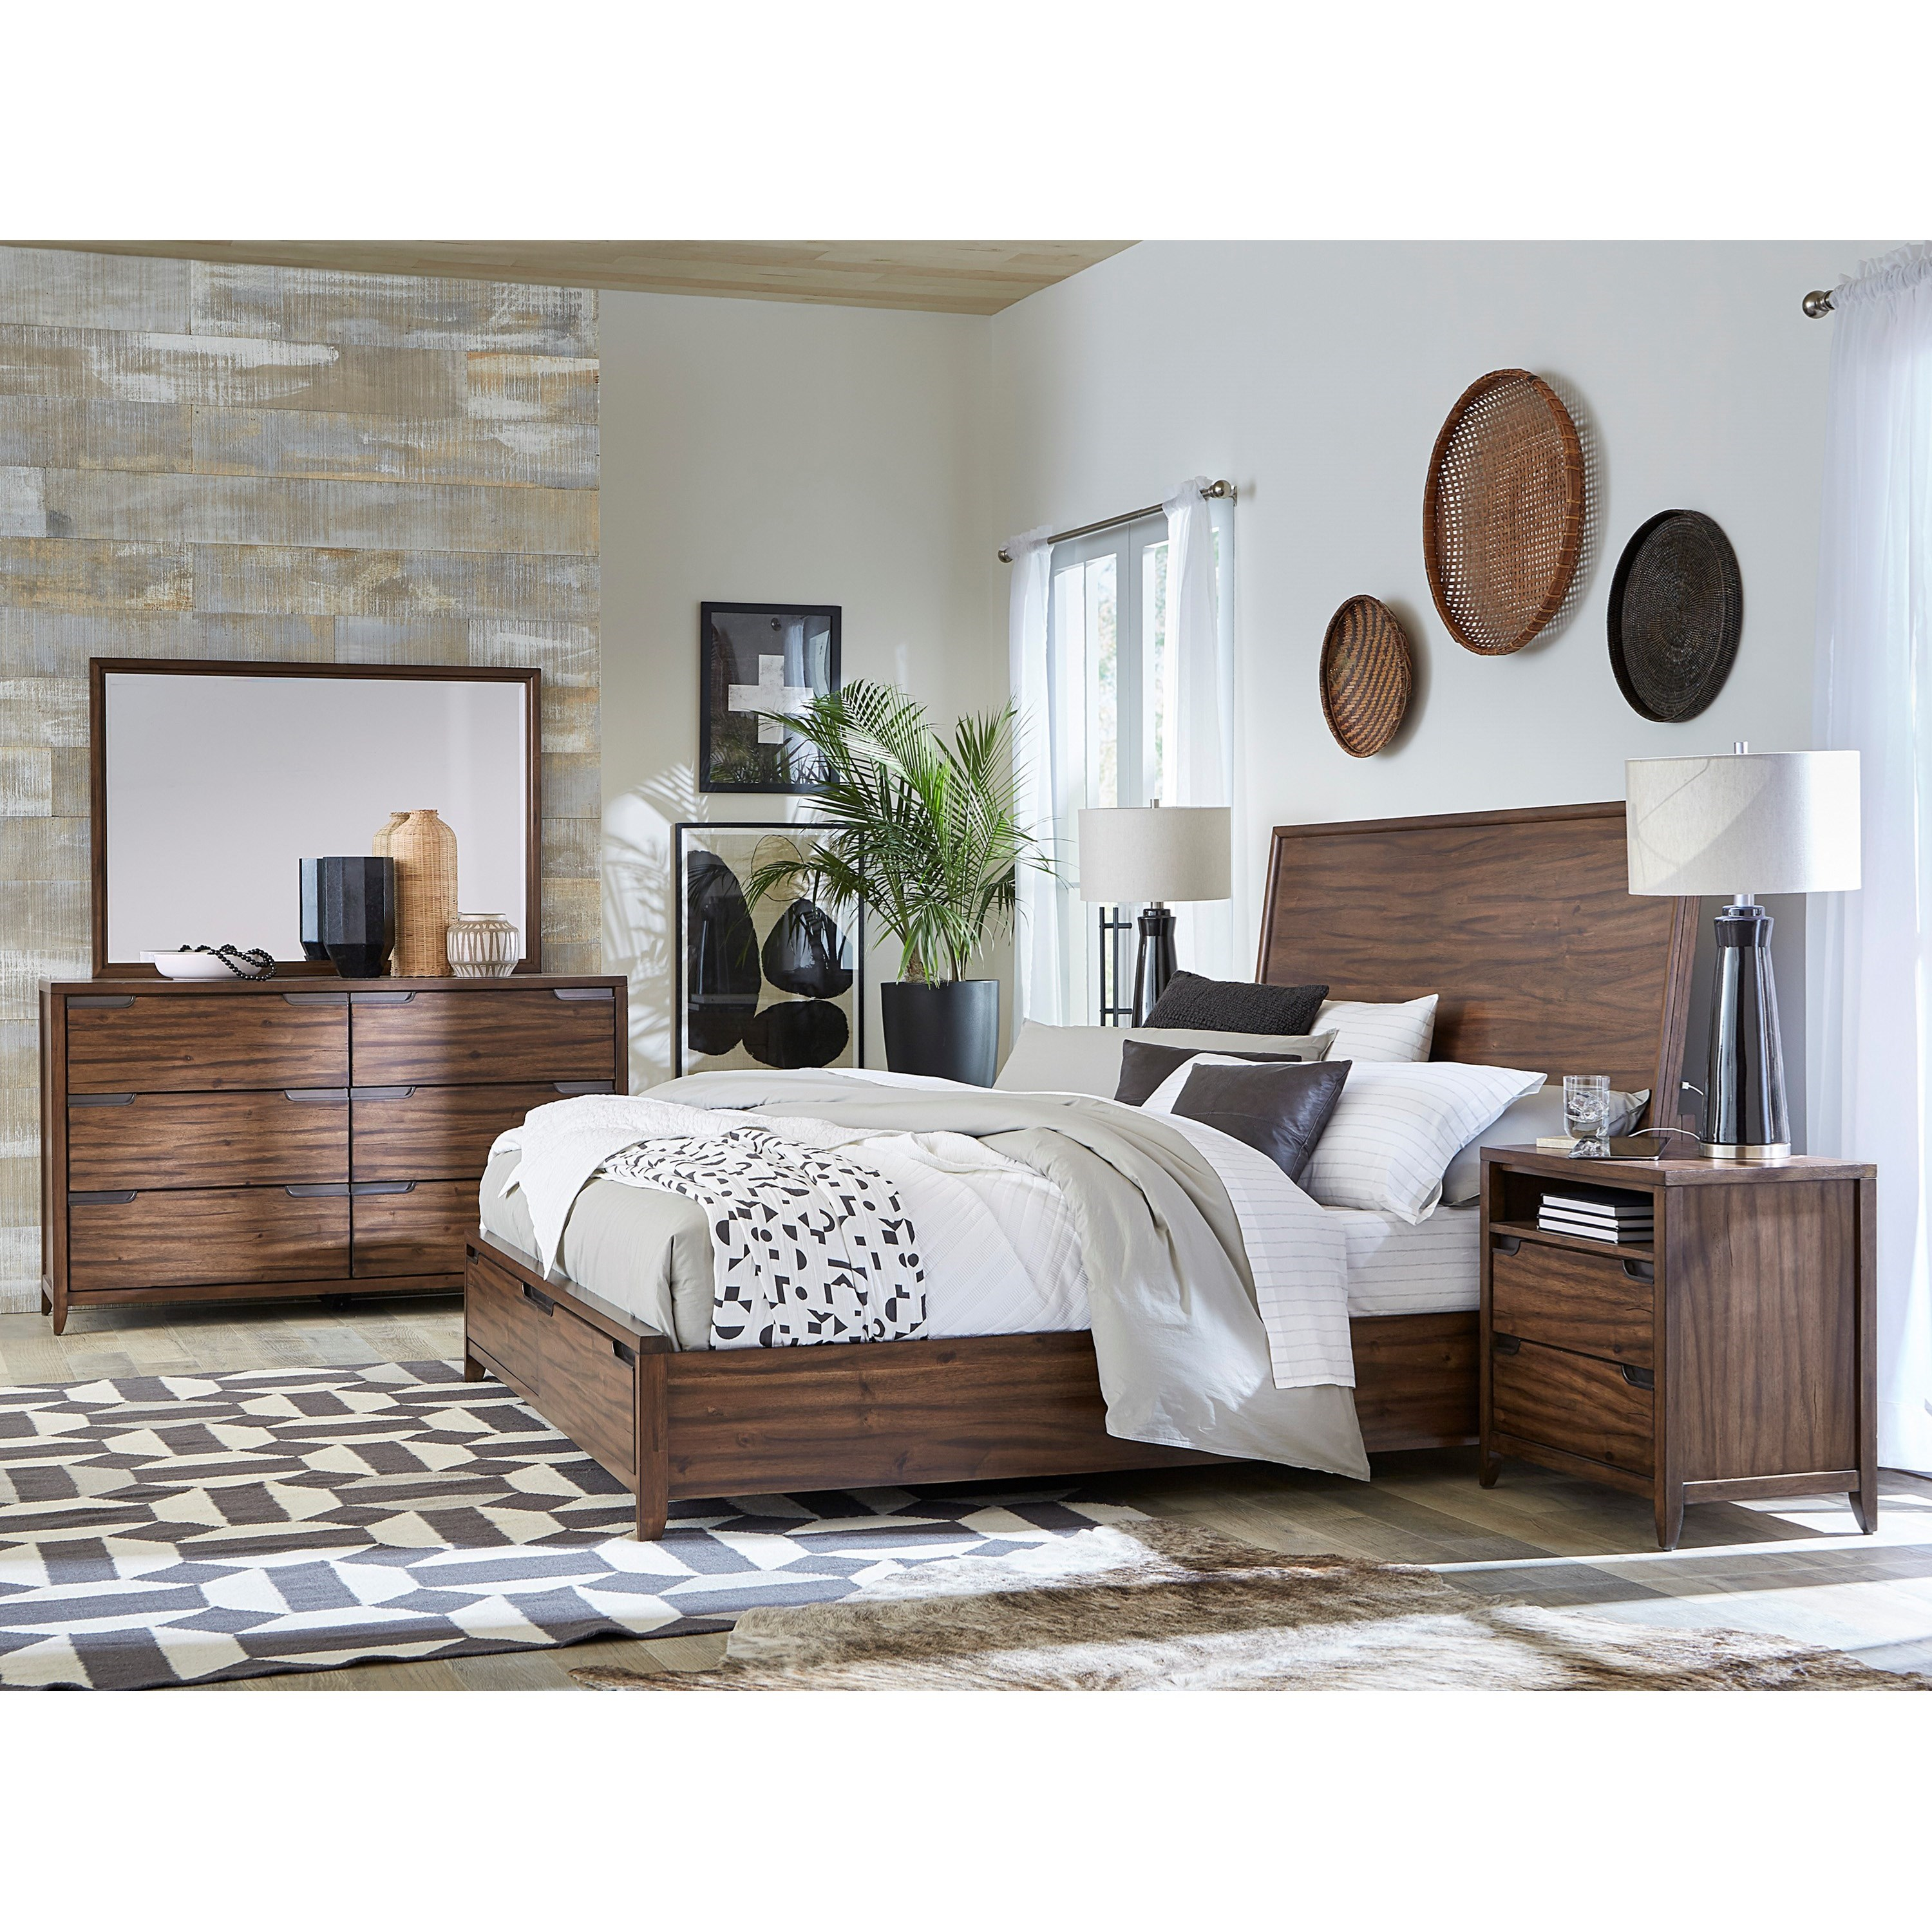 Peyton I317 Queen Storage Bedroom Group by Aspenhome at Mueller Furniture